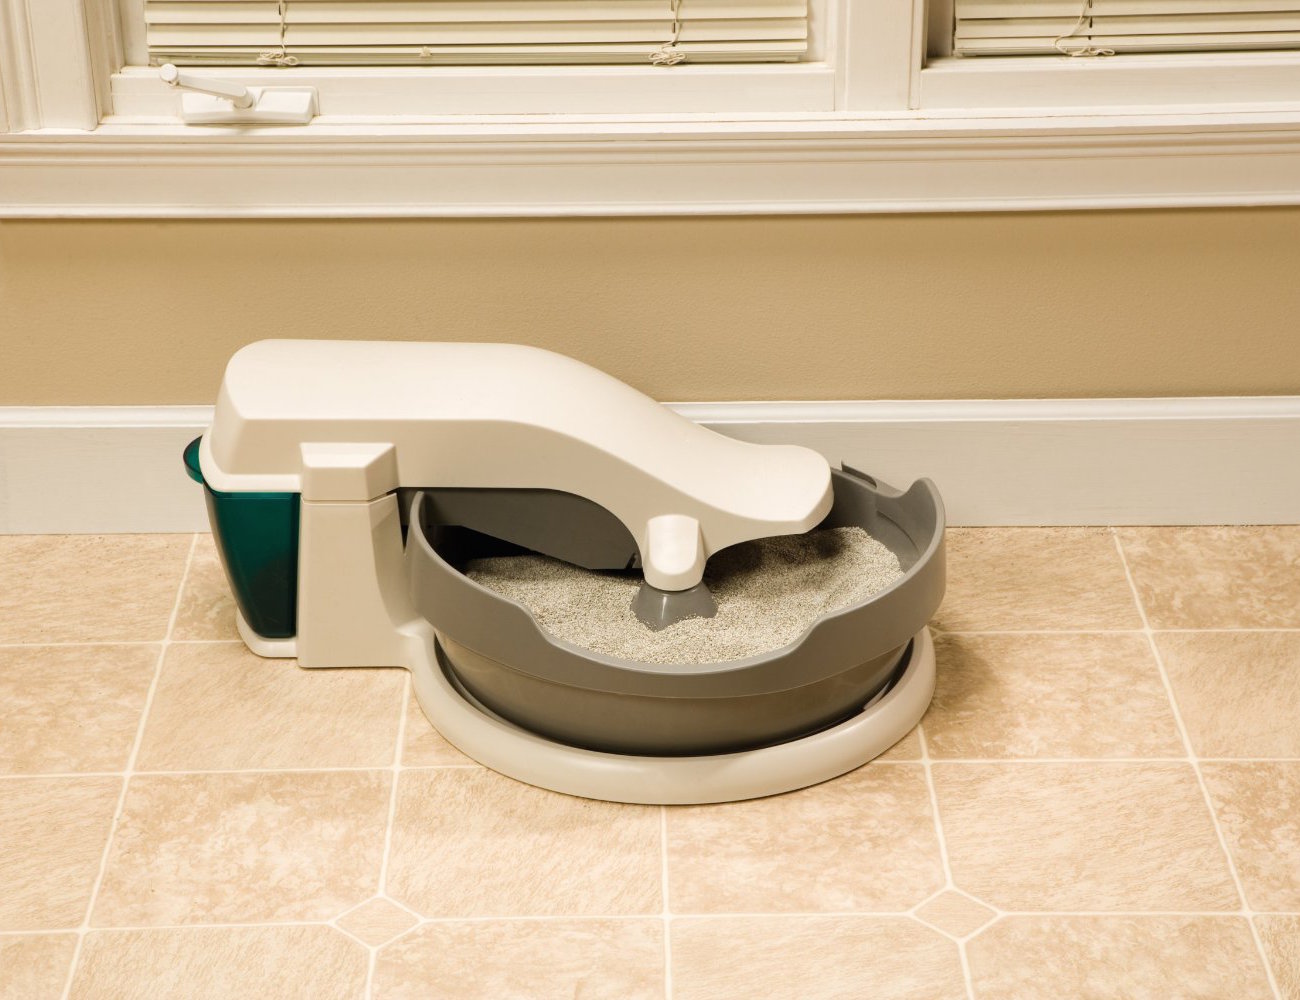 Continuous-Clean Litter Box by PetSafe